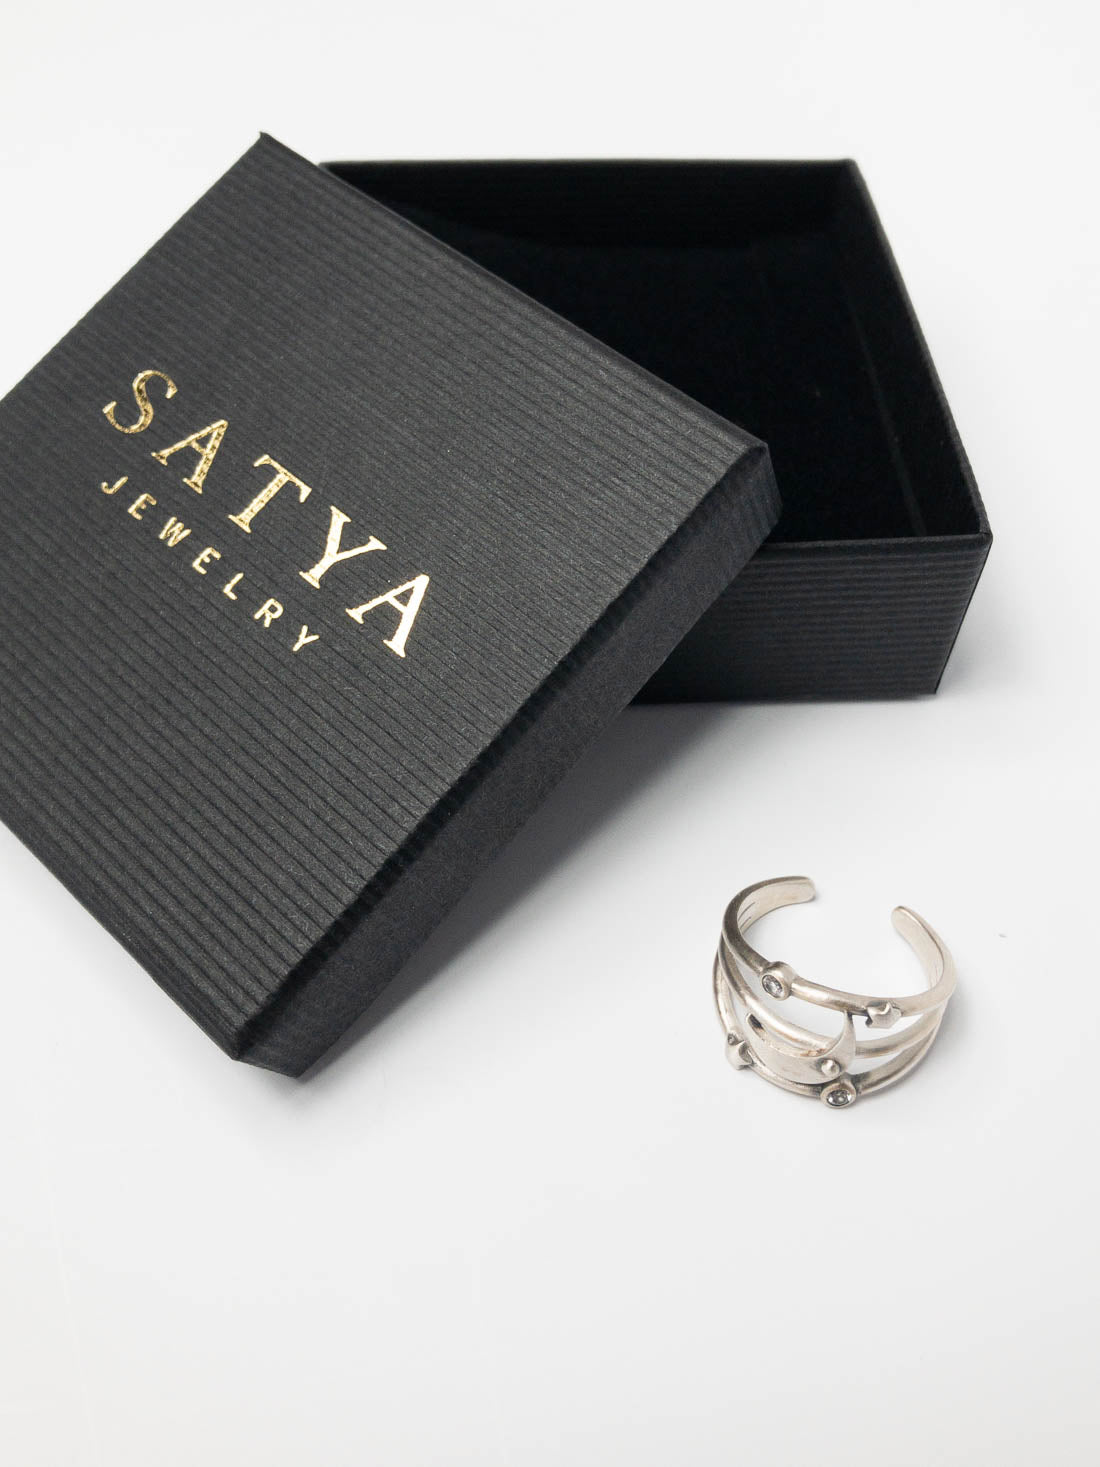 Satya Ring Heavenly Compass - Detail Image 1